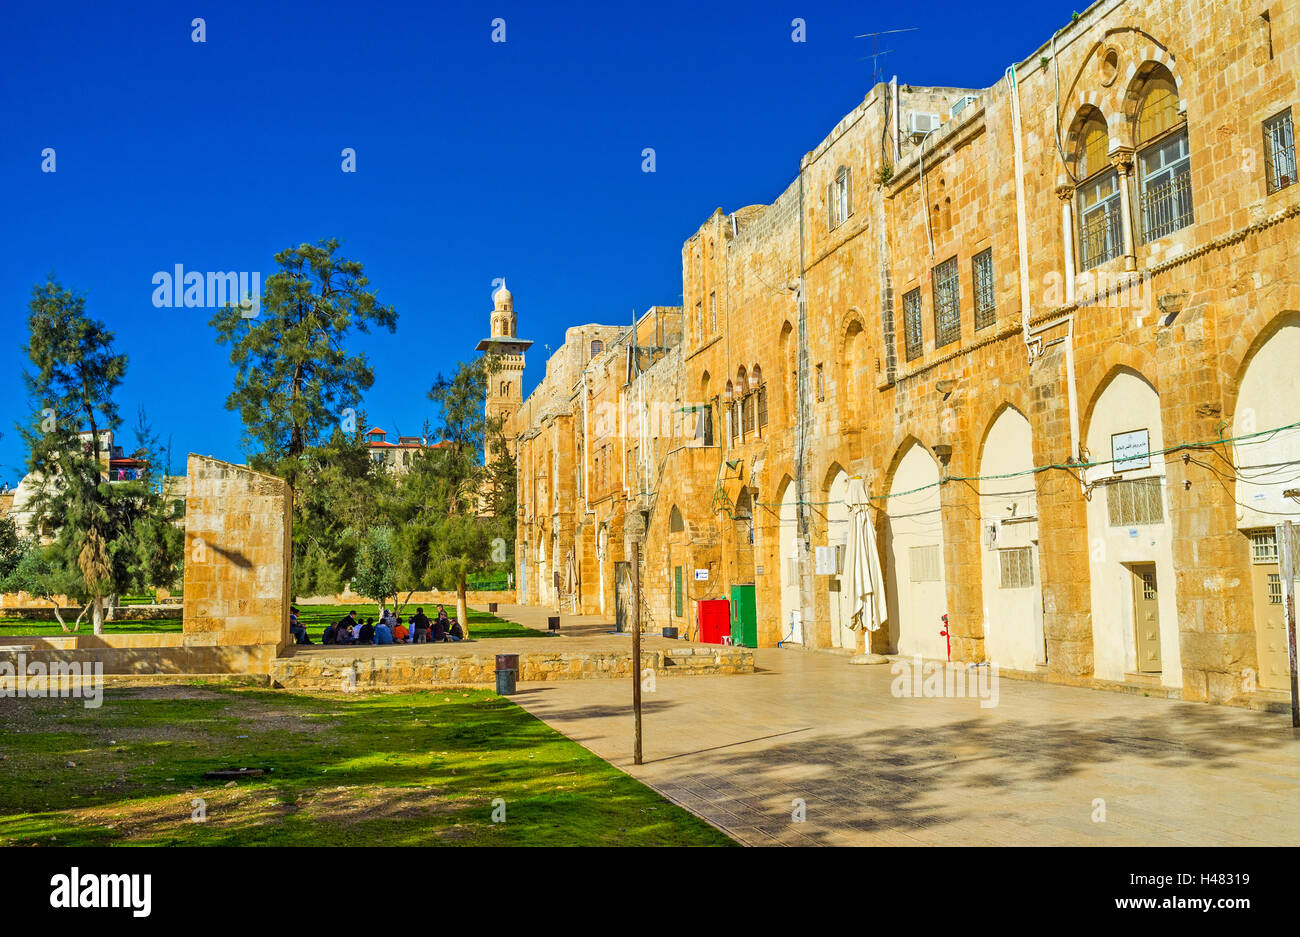 The chidren from Omariya school study next to the Sabil Suleiman on the Temple Mount, Jerusalem Israel Stock Photo